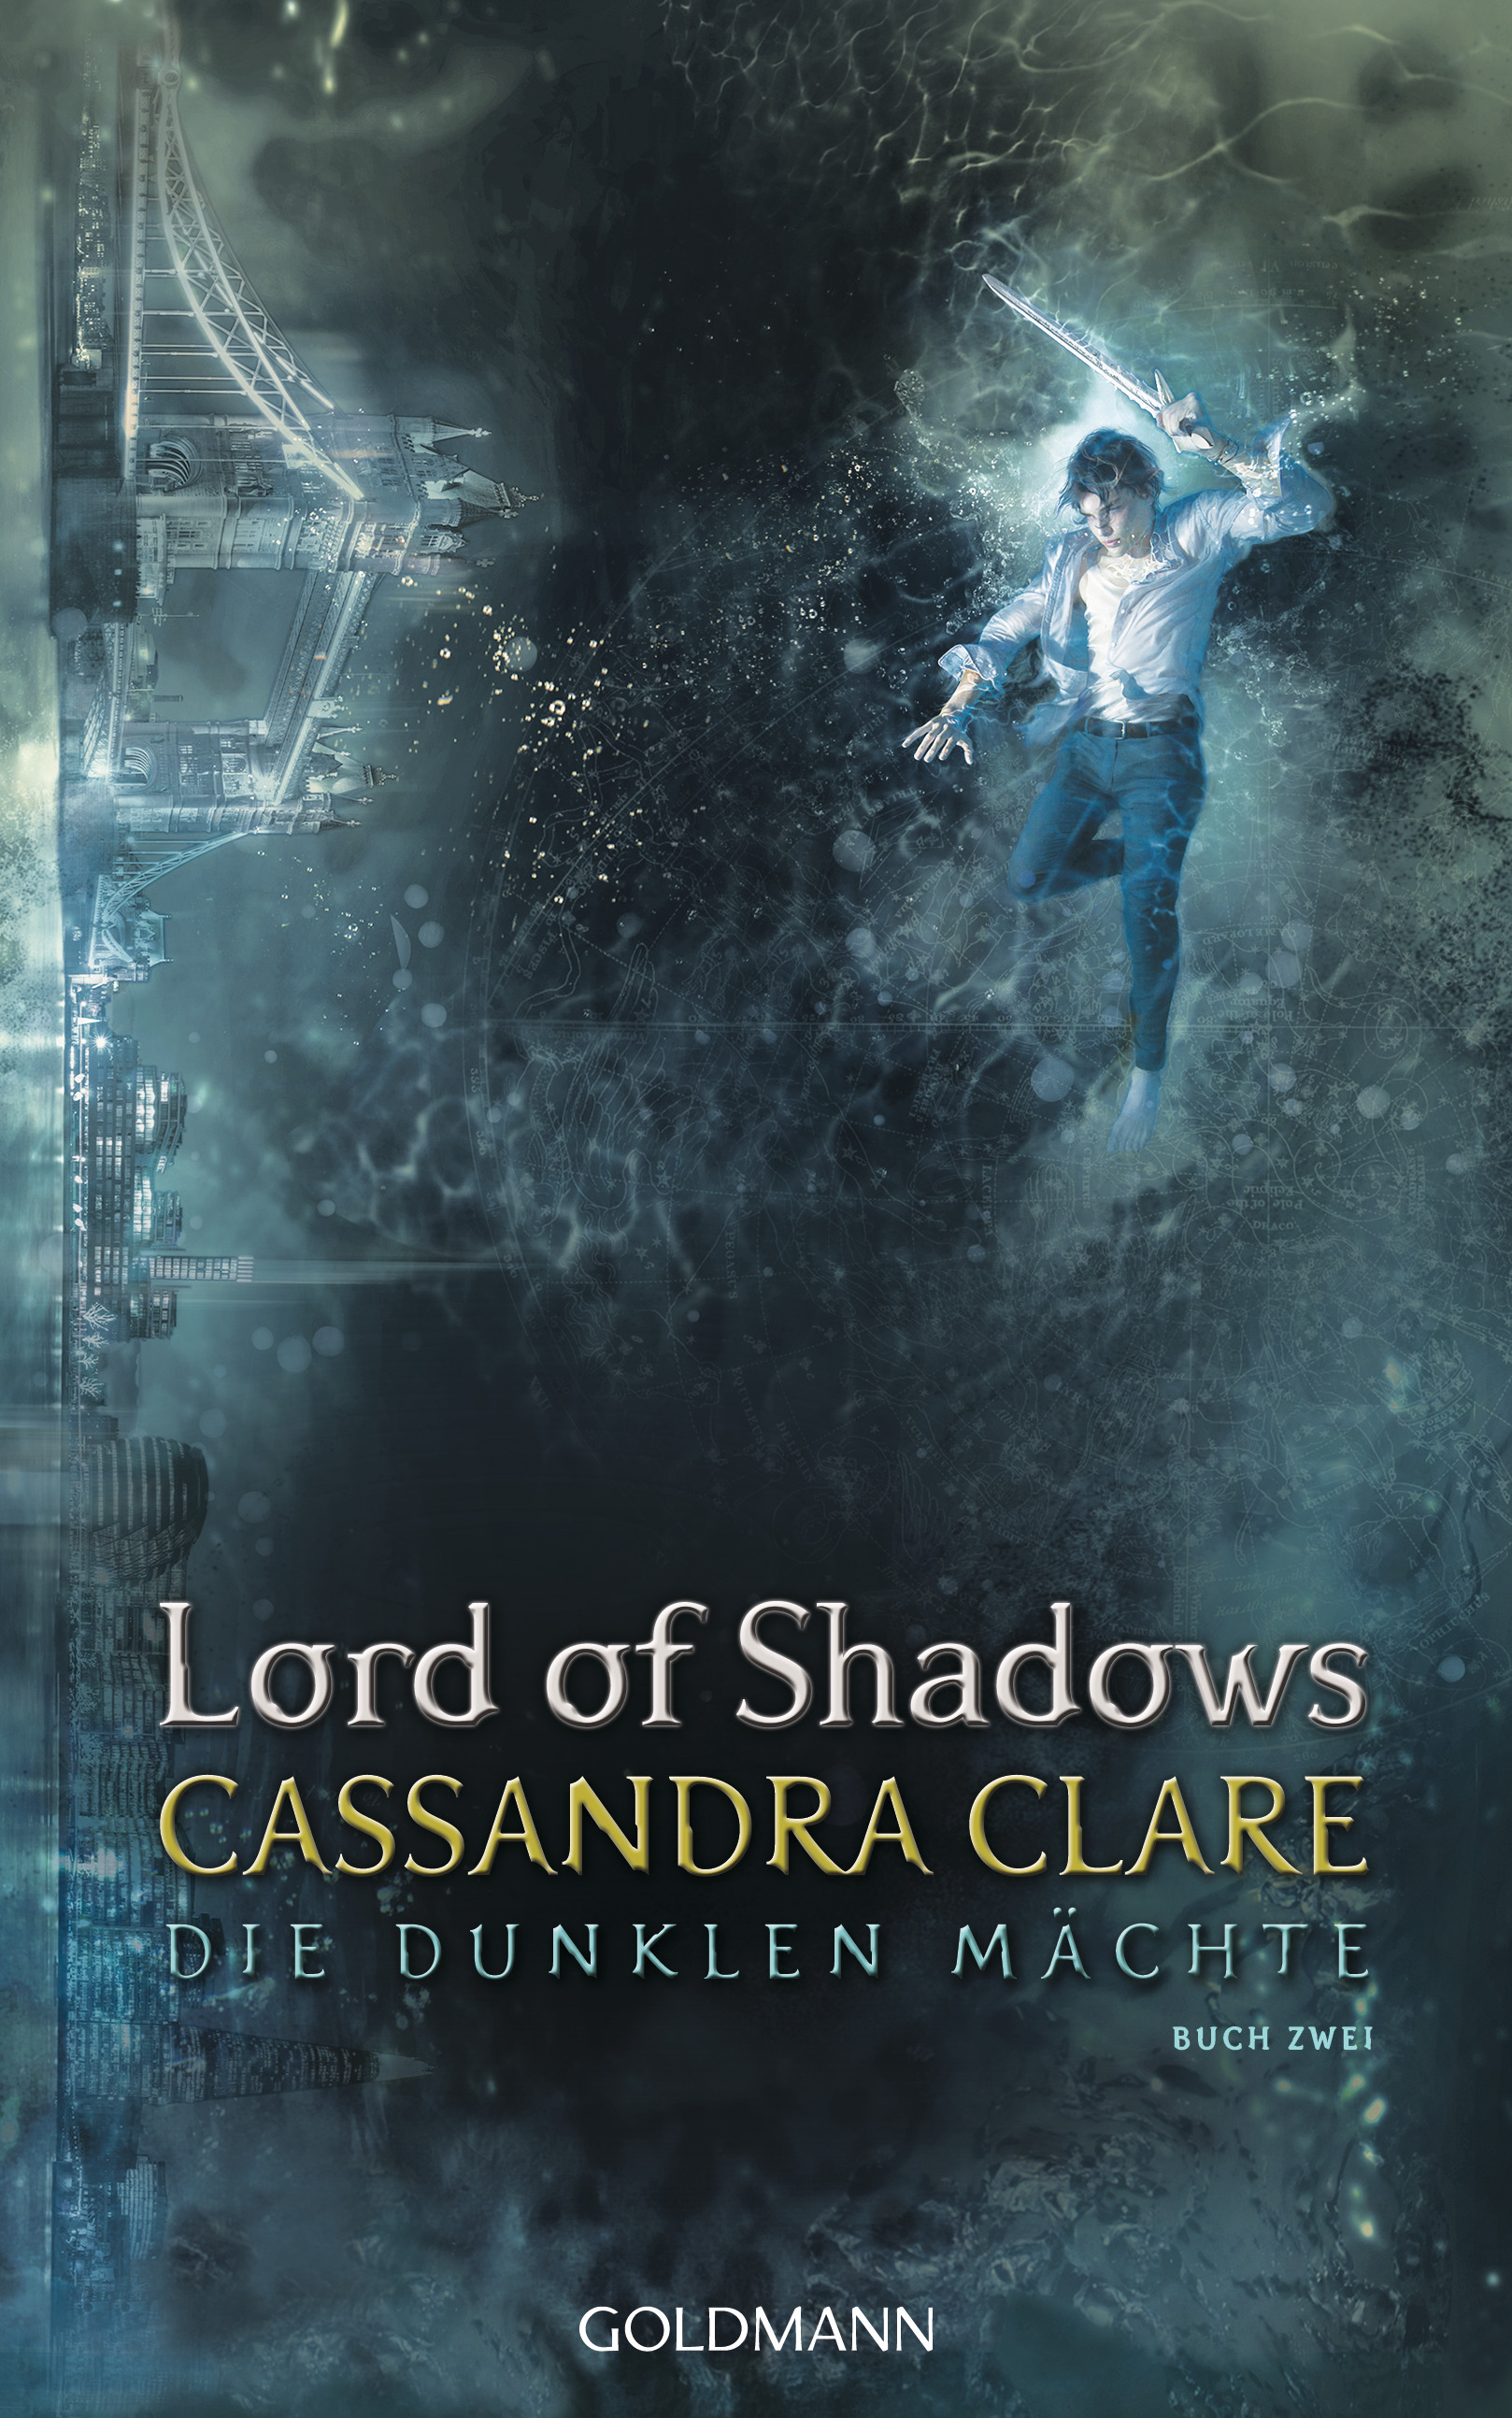 https://www.randomhouse.de/Buch/Lord-of-Shadows/Cassandra-Clare/Goldmann/e496831.rhd